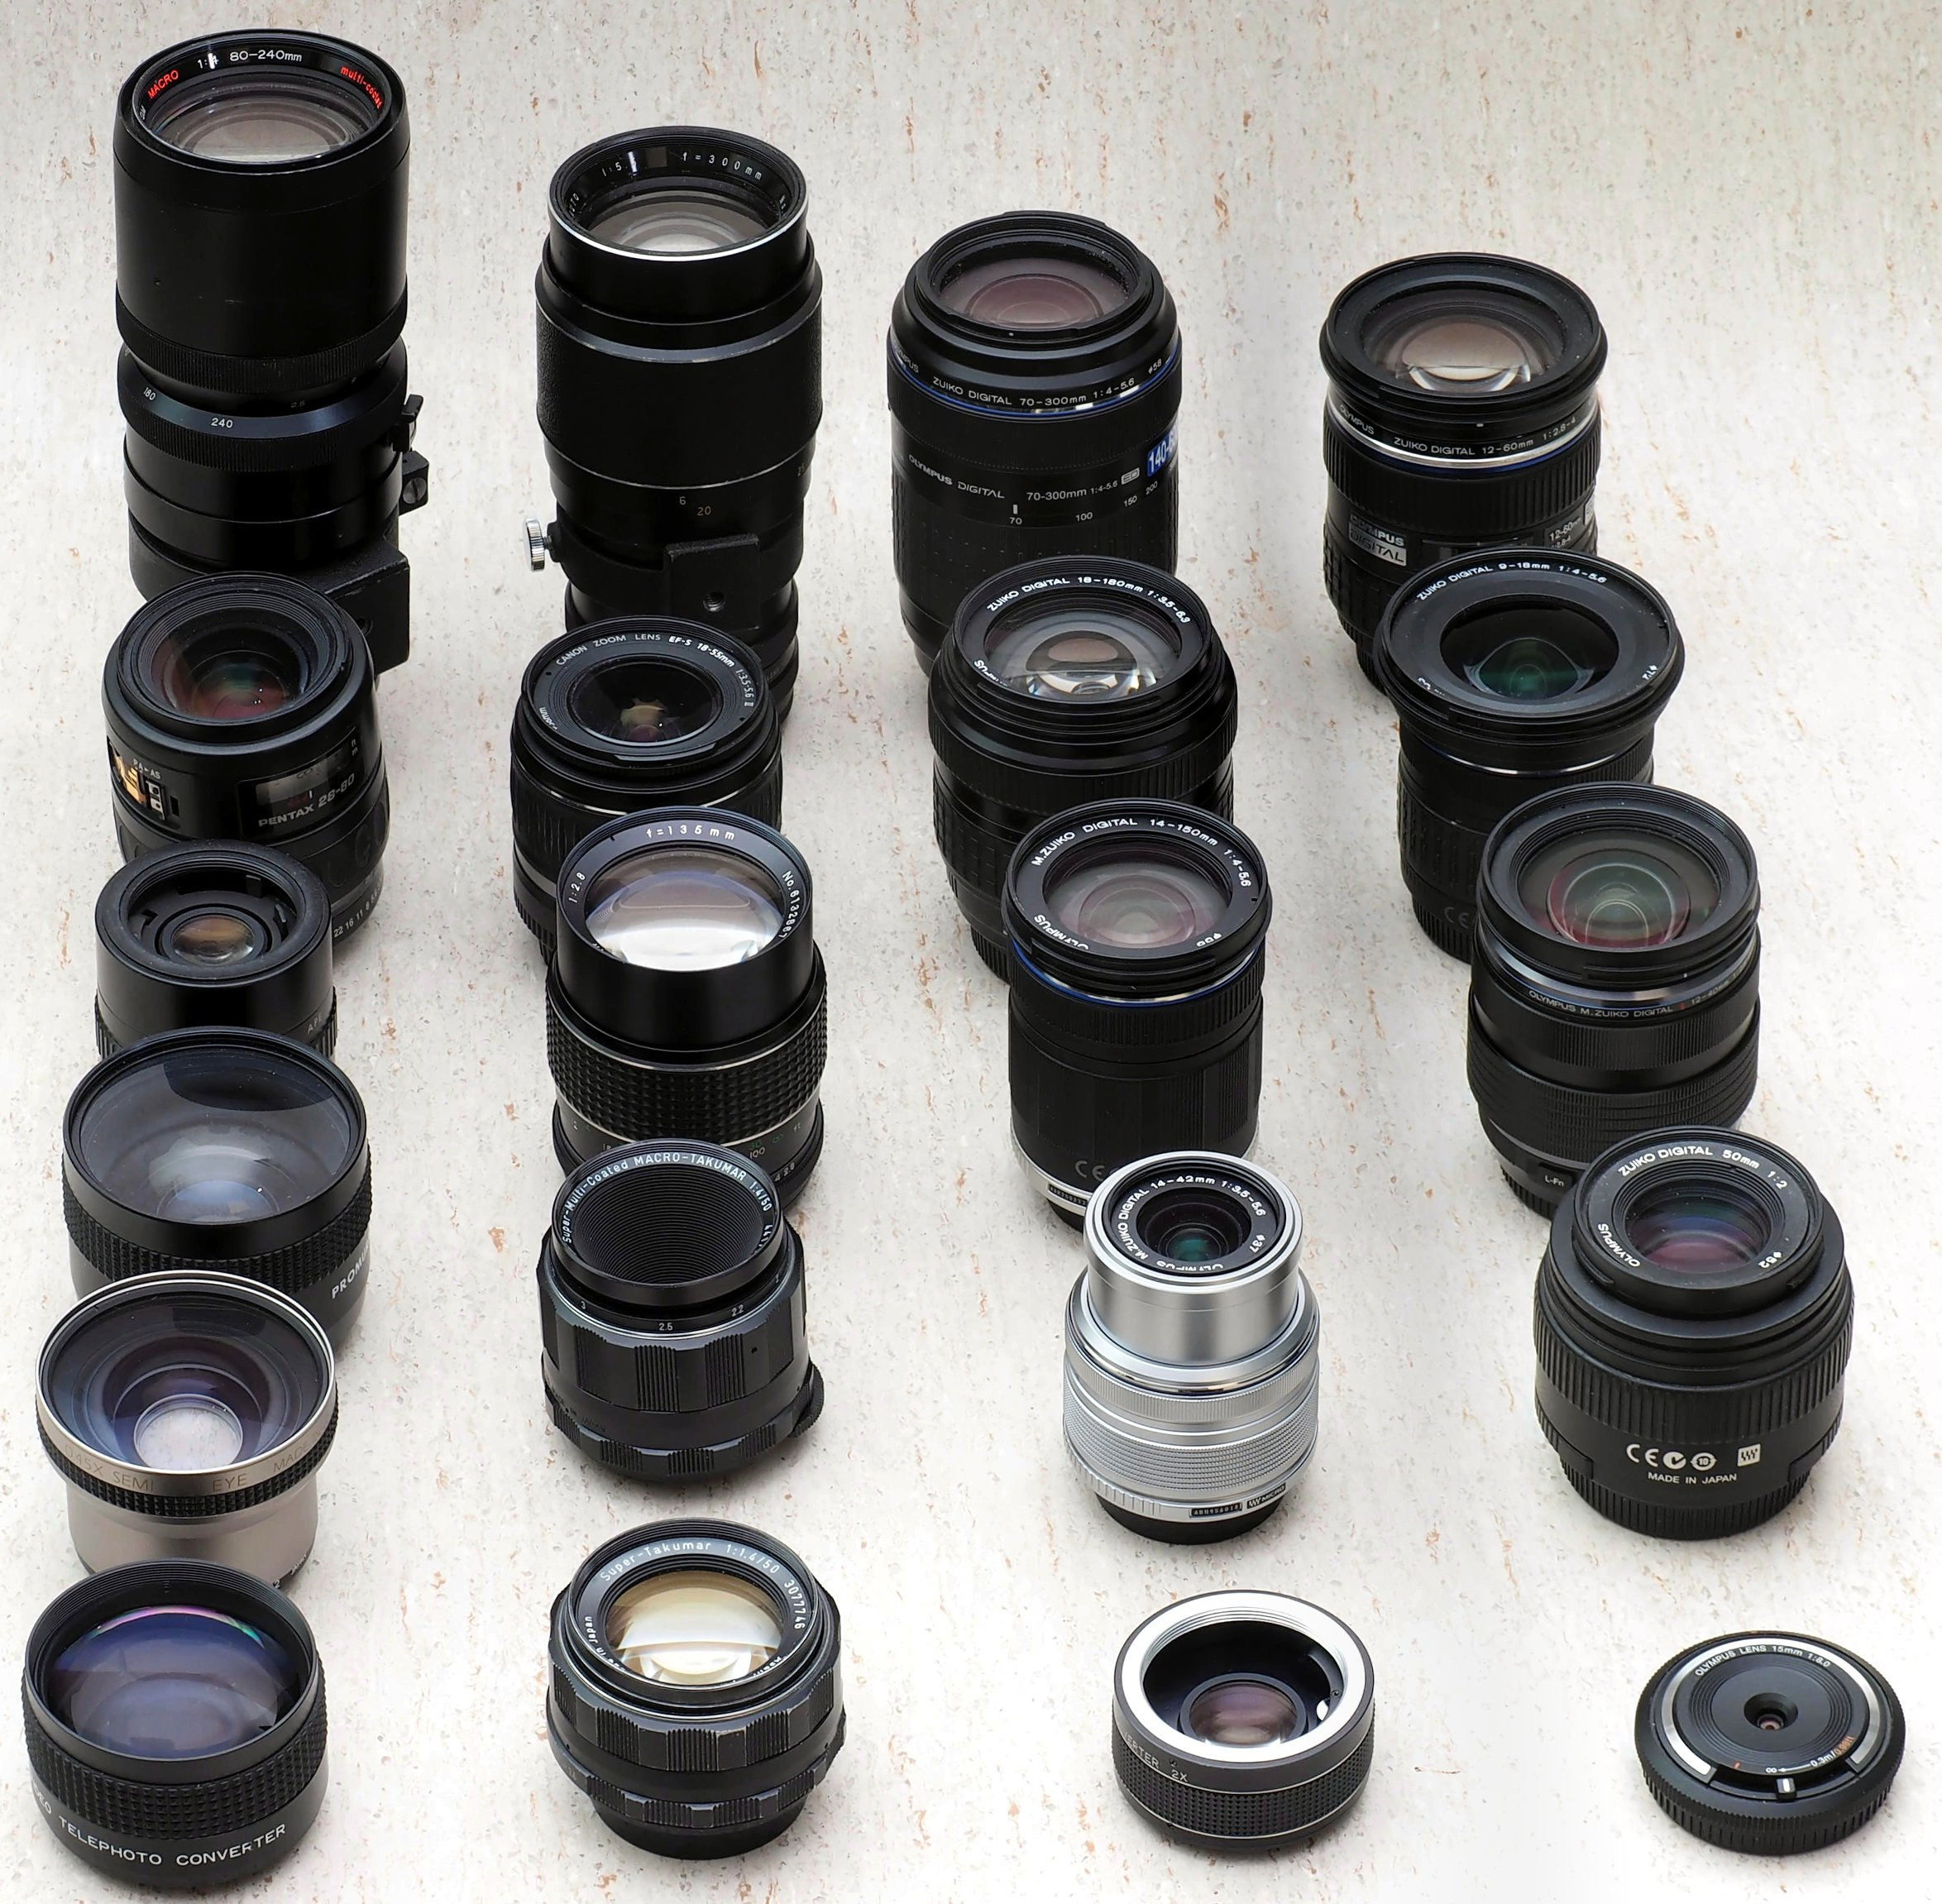 This should be All-lenses.jpeg.  Is it missing?